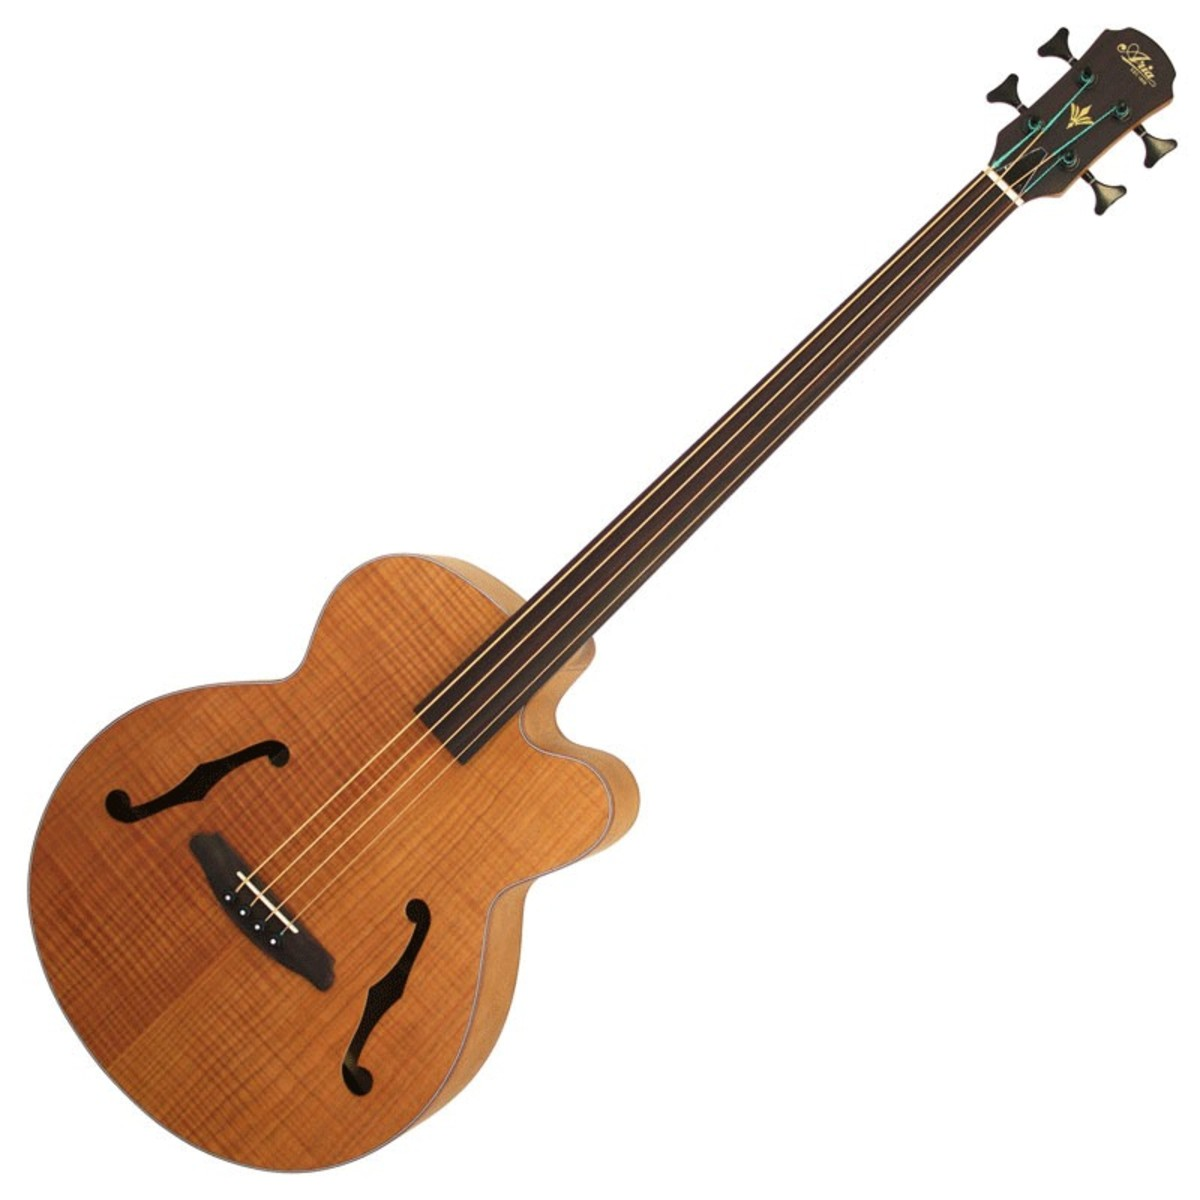 aria feb fretless electro acoustic bass guitar flame natural b stock at gear4music. Black Bedroom Furniture Sets. Home Design Ideas